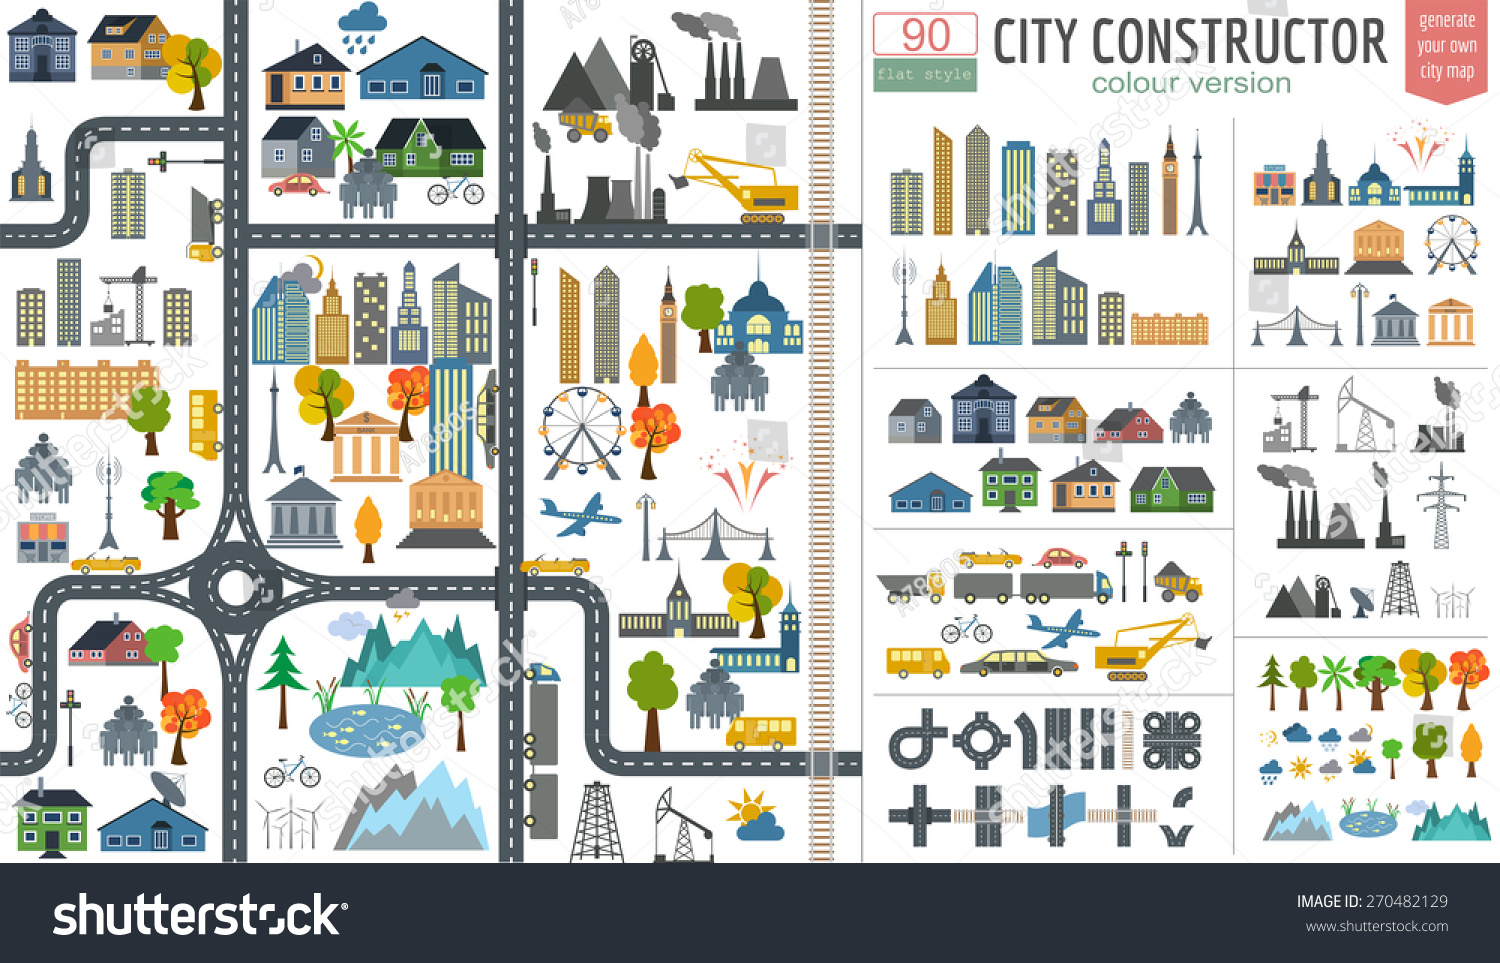 City Map Generator City Map Example Stock Vector 270482129